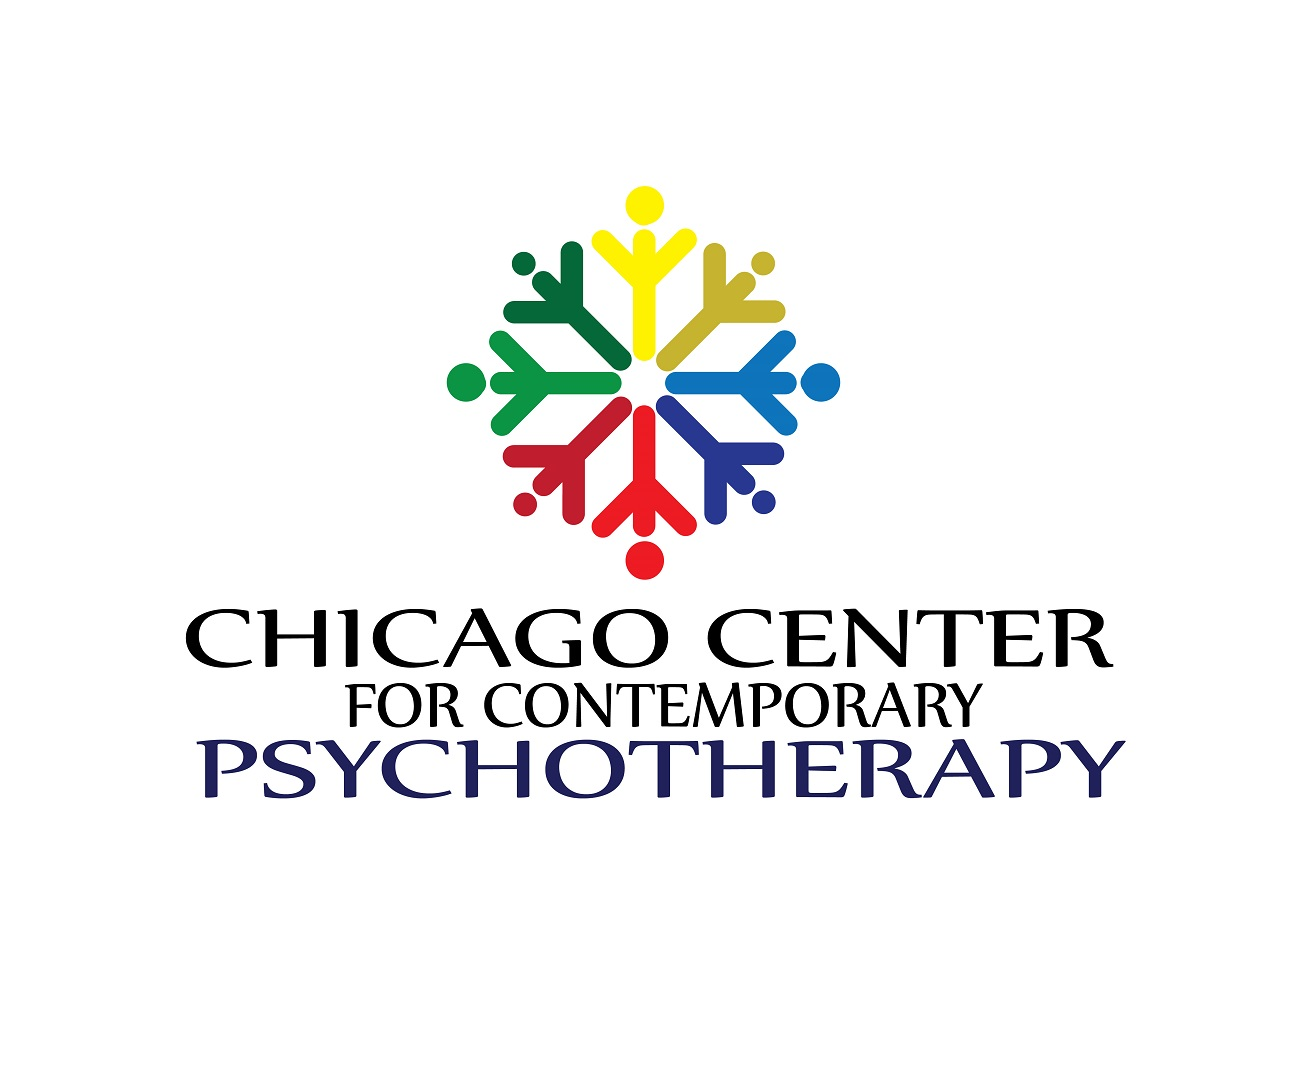 Logo Design by jhunzkie24 - Entry No. 60 in the Logo Design Contest Inspiring Logo Design for Chicago Center for Contemporary Psychotherapy.